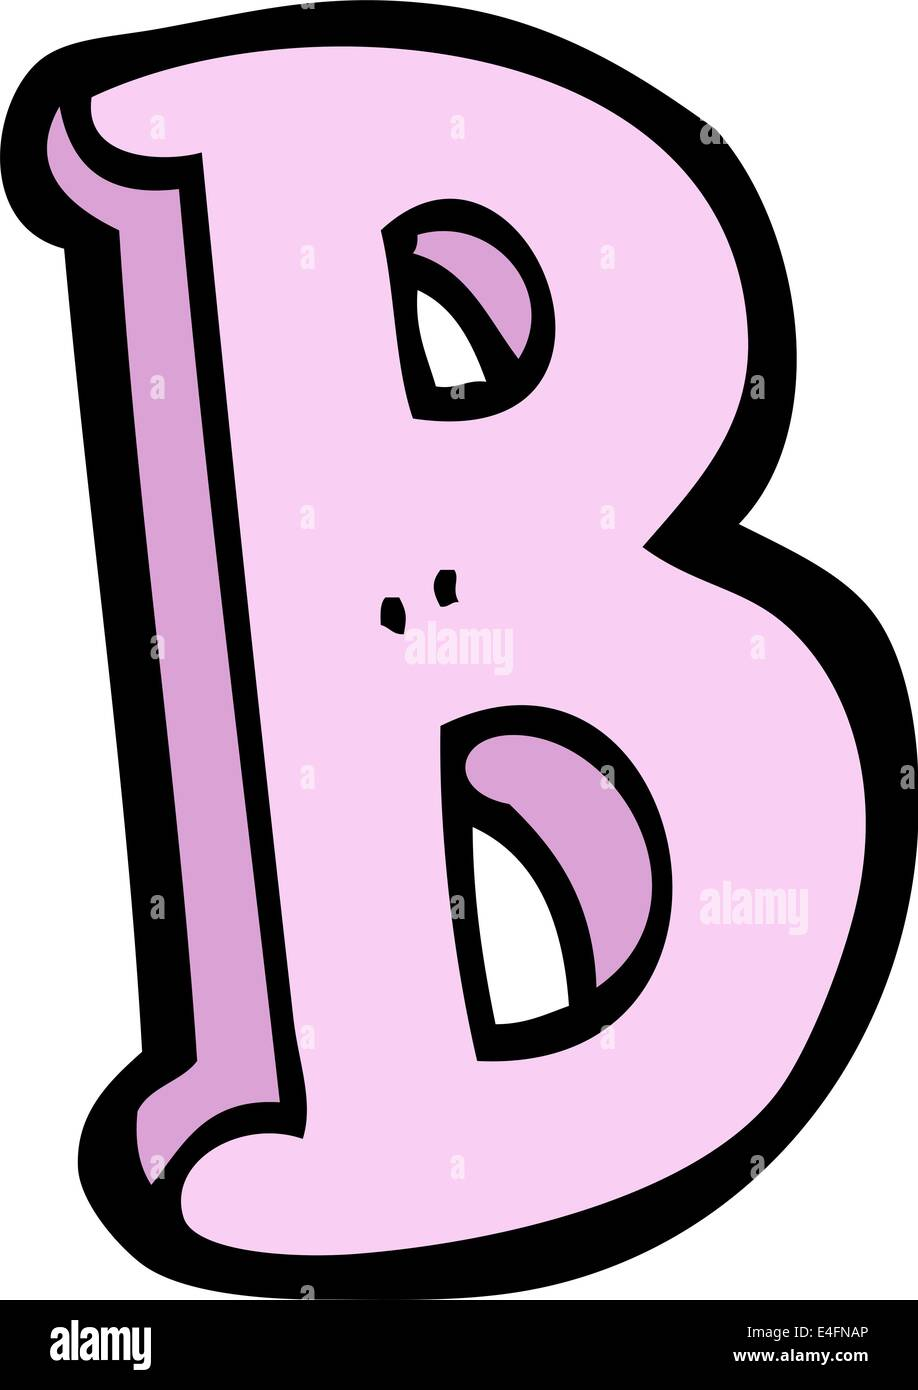 cartoon letter B Stock Vector Art & Illustration, Vector Image ...